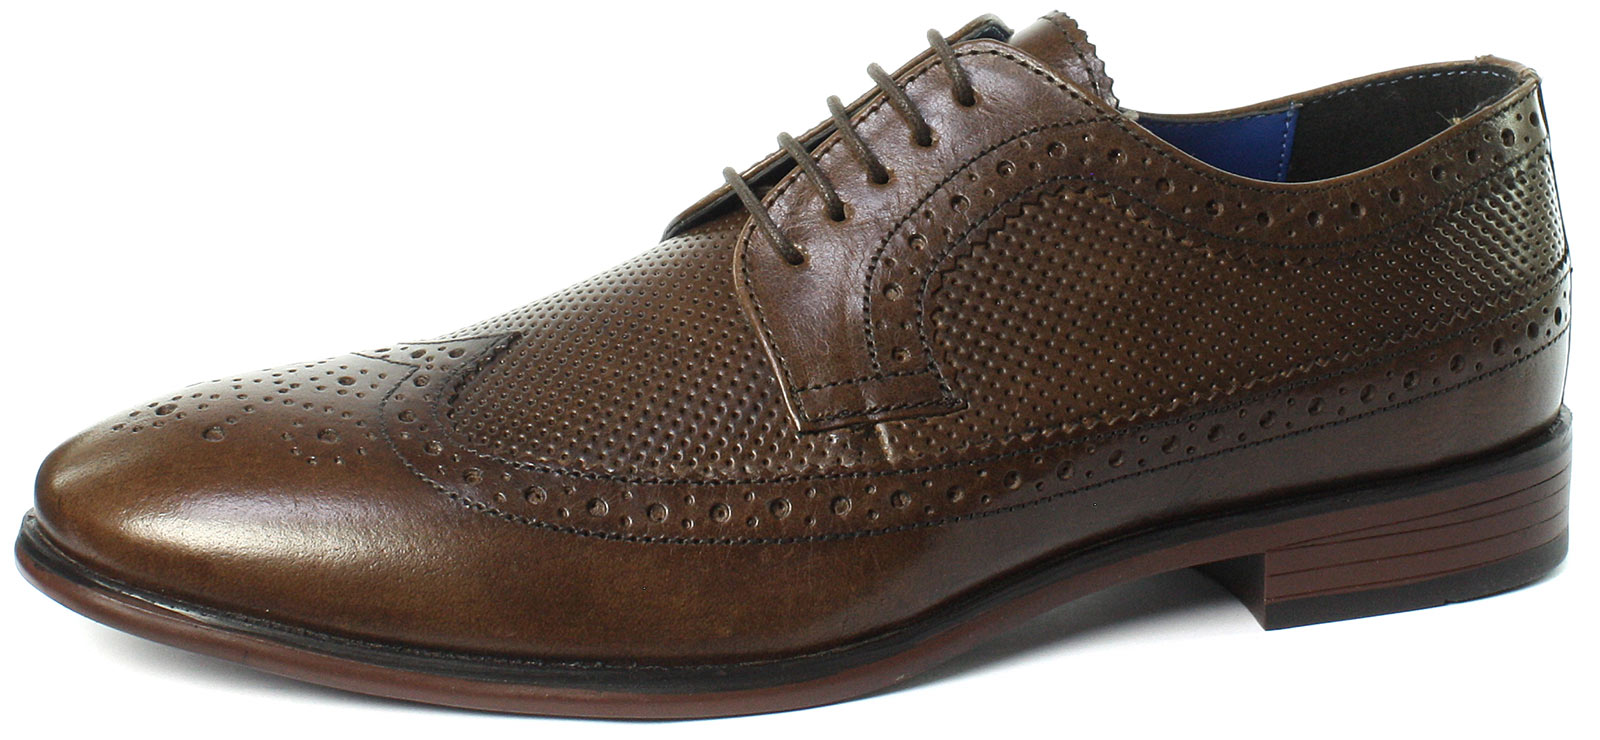 Red Tape Nappa Brown Mens Formal Shoe Uk 9 For Sale Online Ebay